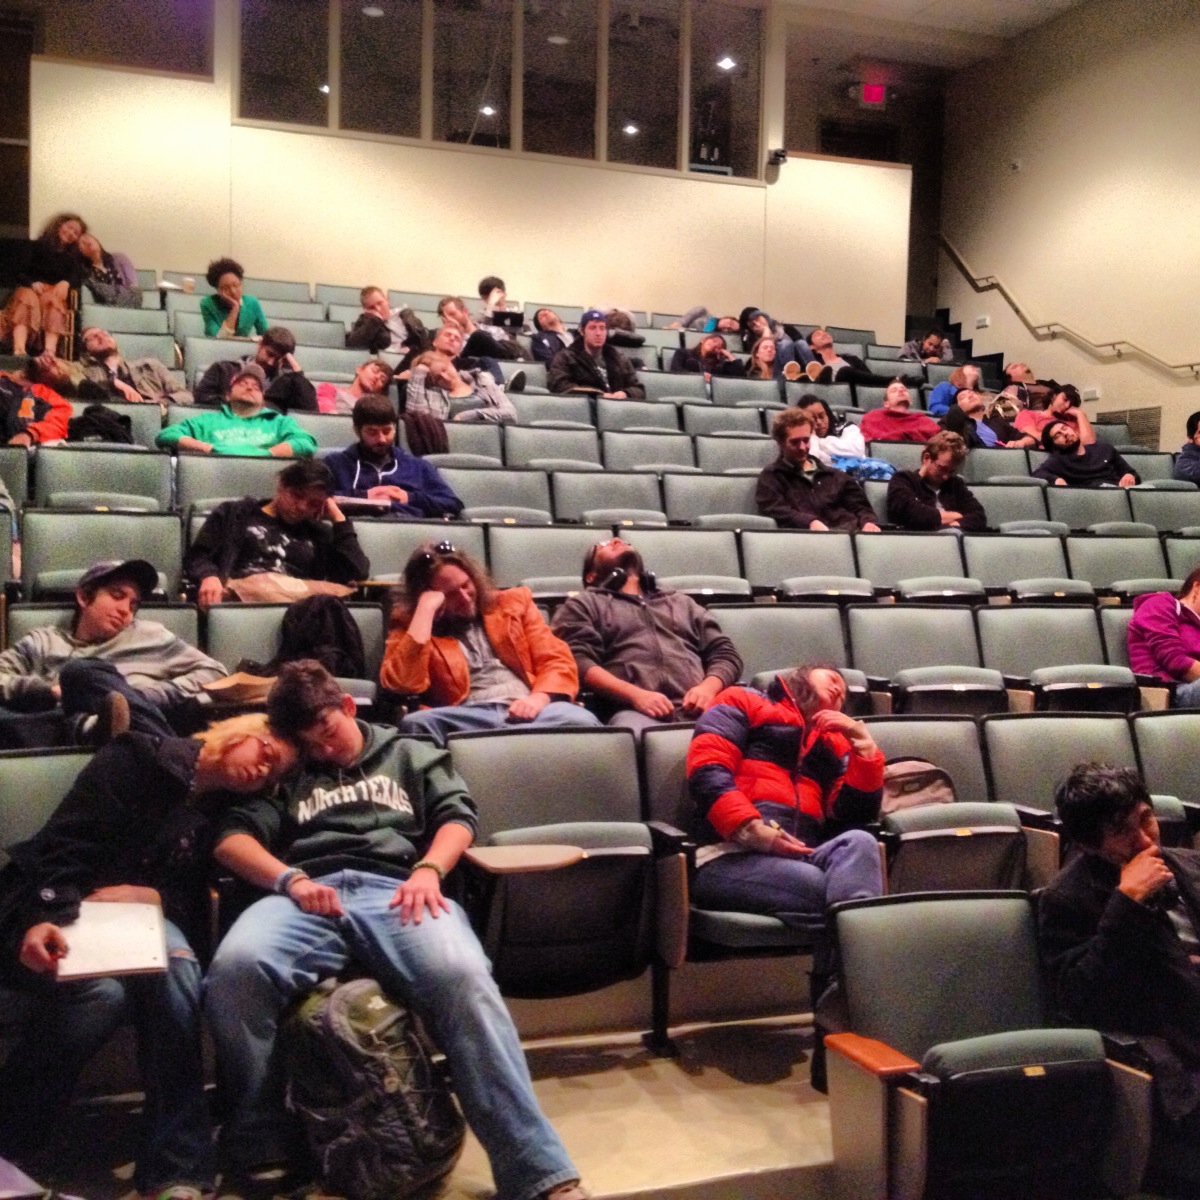 James Wallace and I spoke to film students about Gordon and the Whale and film criticism at our alma mater yesterday, the University of North Texas. We managed to only put 99% to sleep.